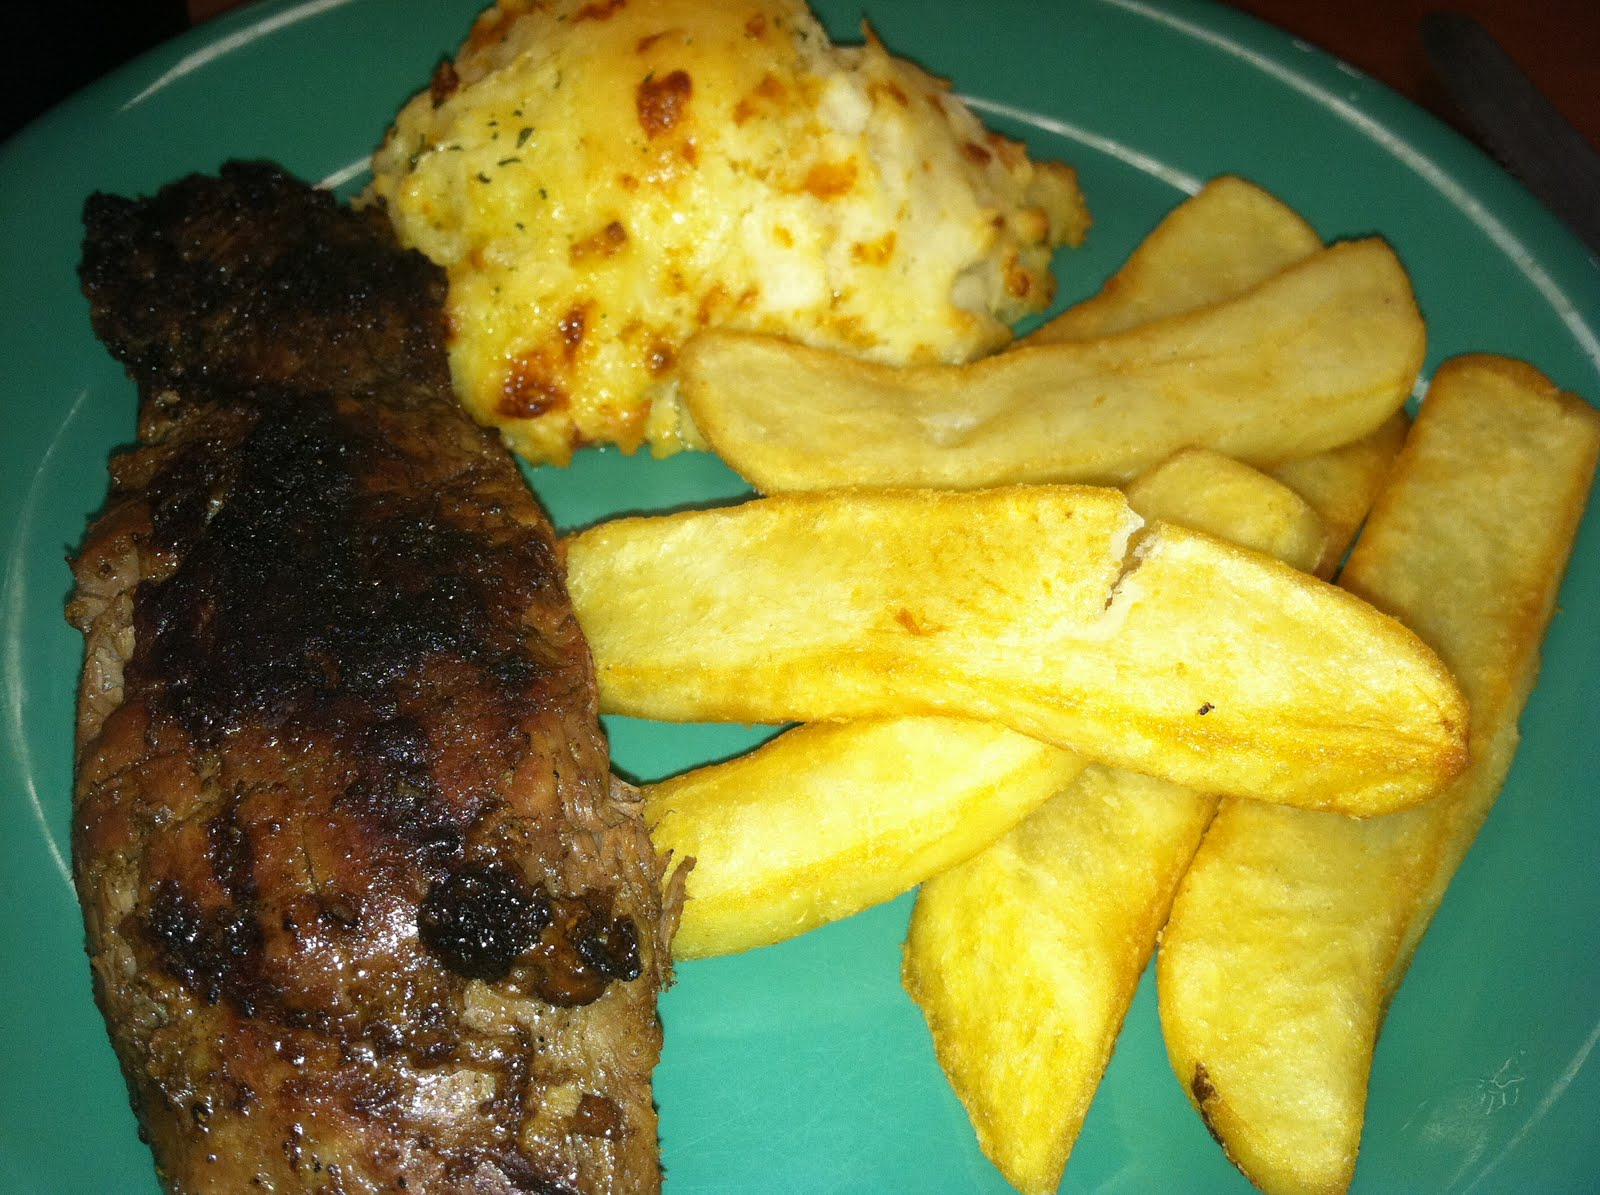 French Fry Diary: French Fry Diary 247: Golden Corral